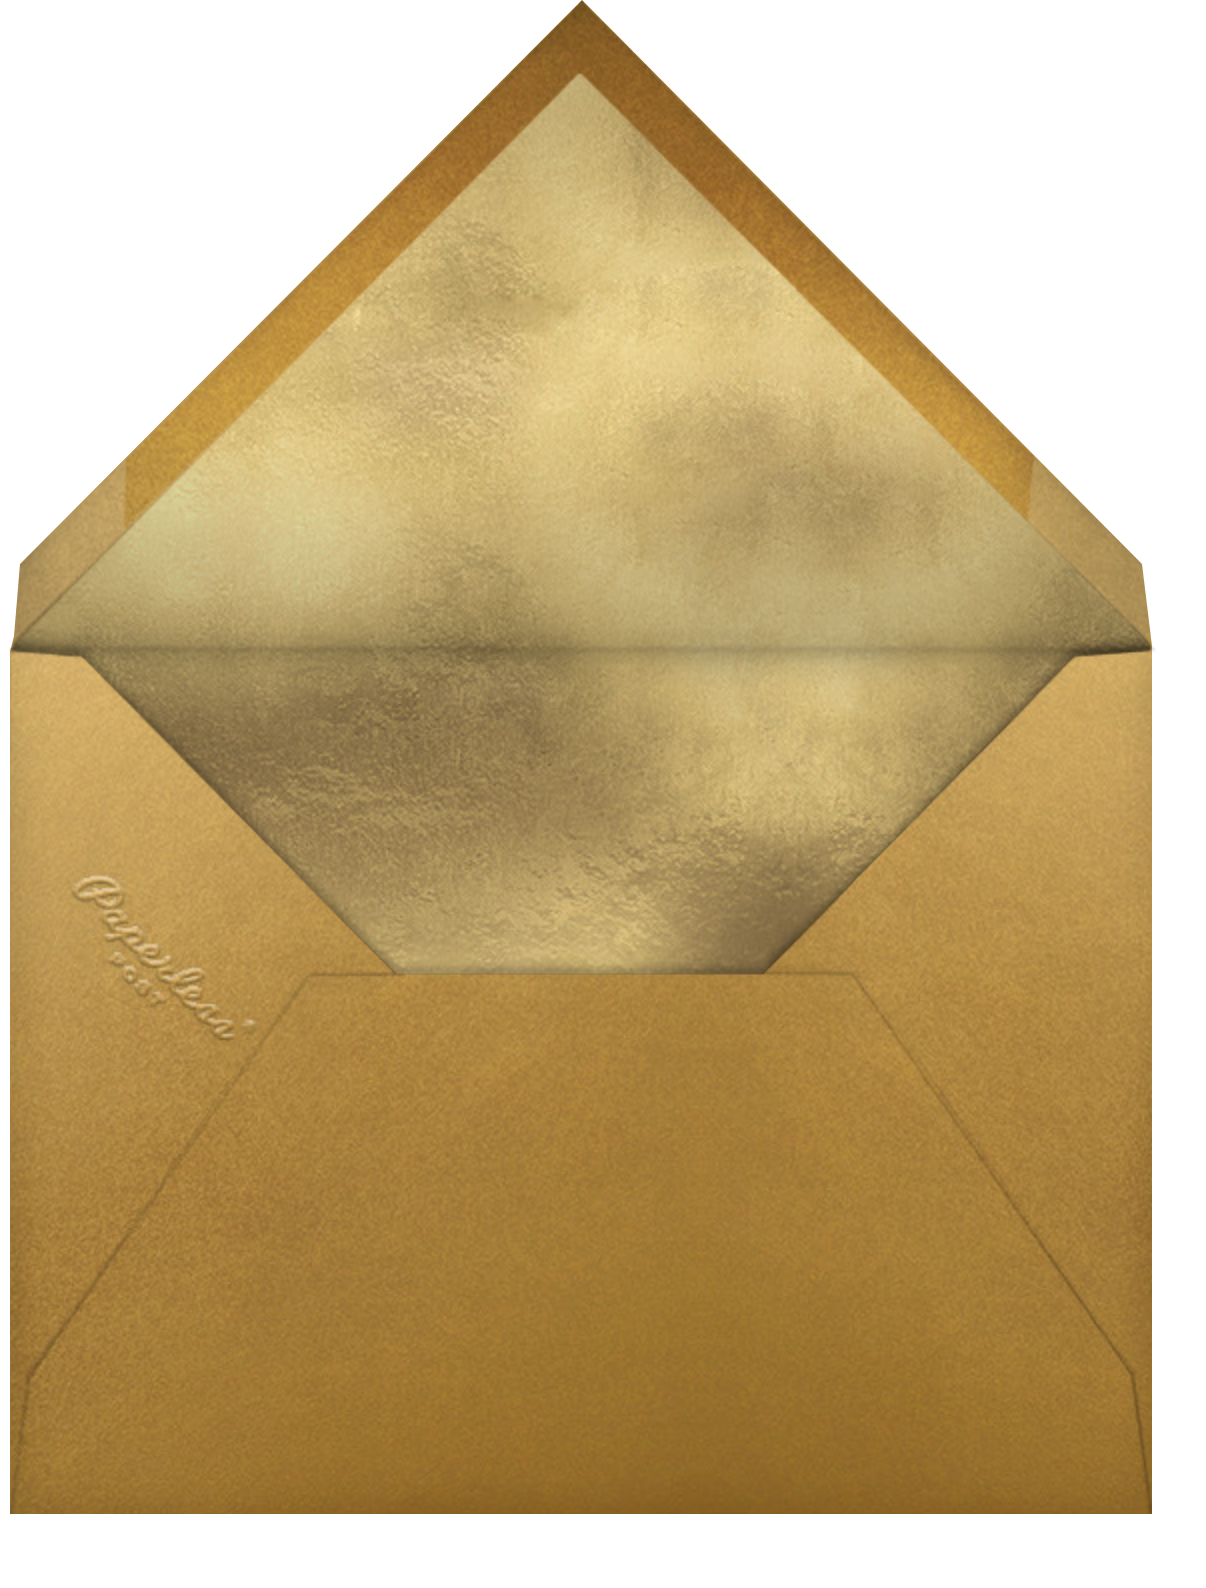 We'll Have Another - Paperless Post - Corporate invitations - envelope back